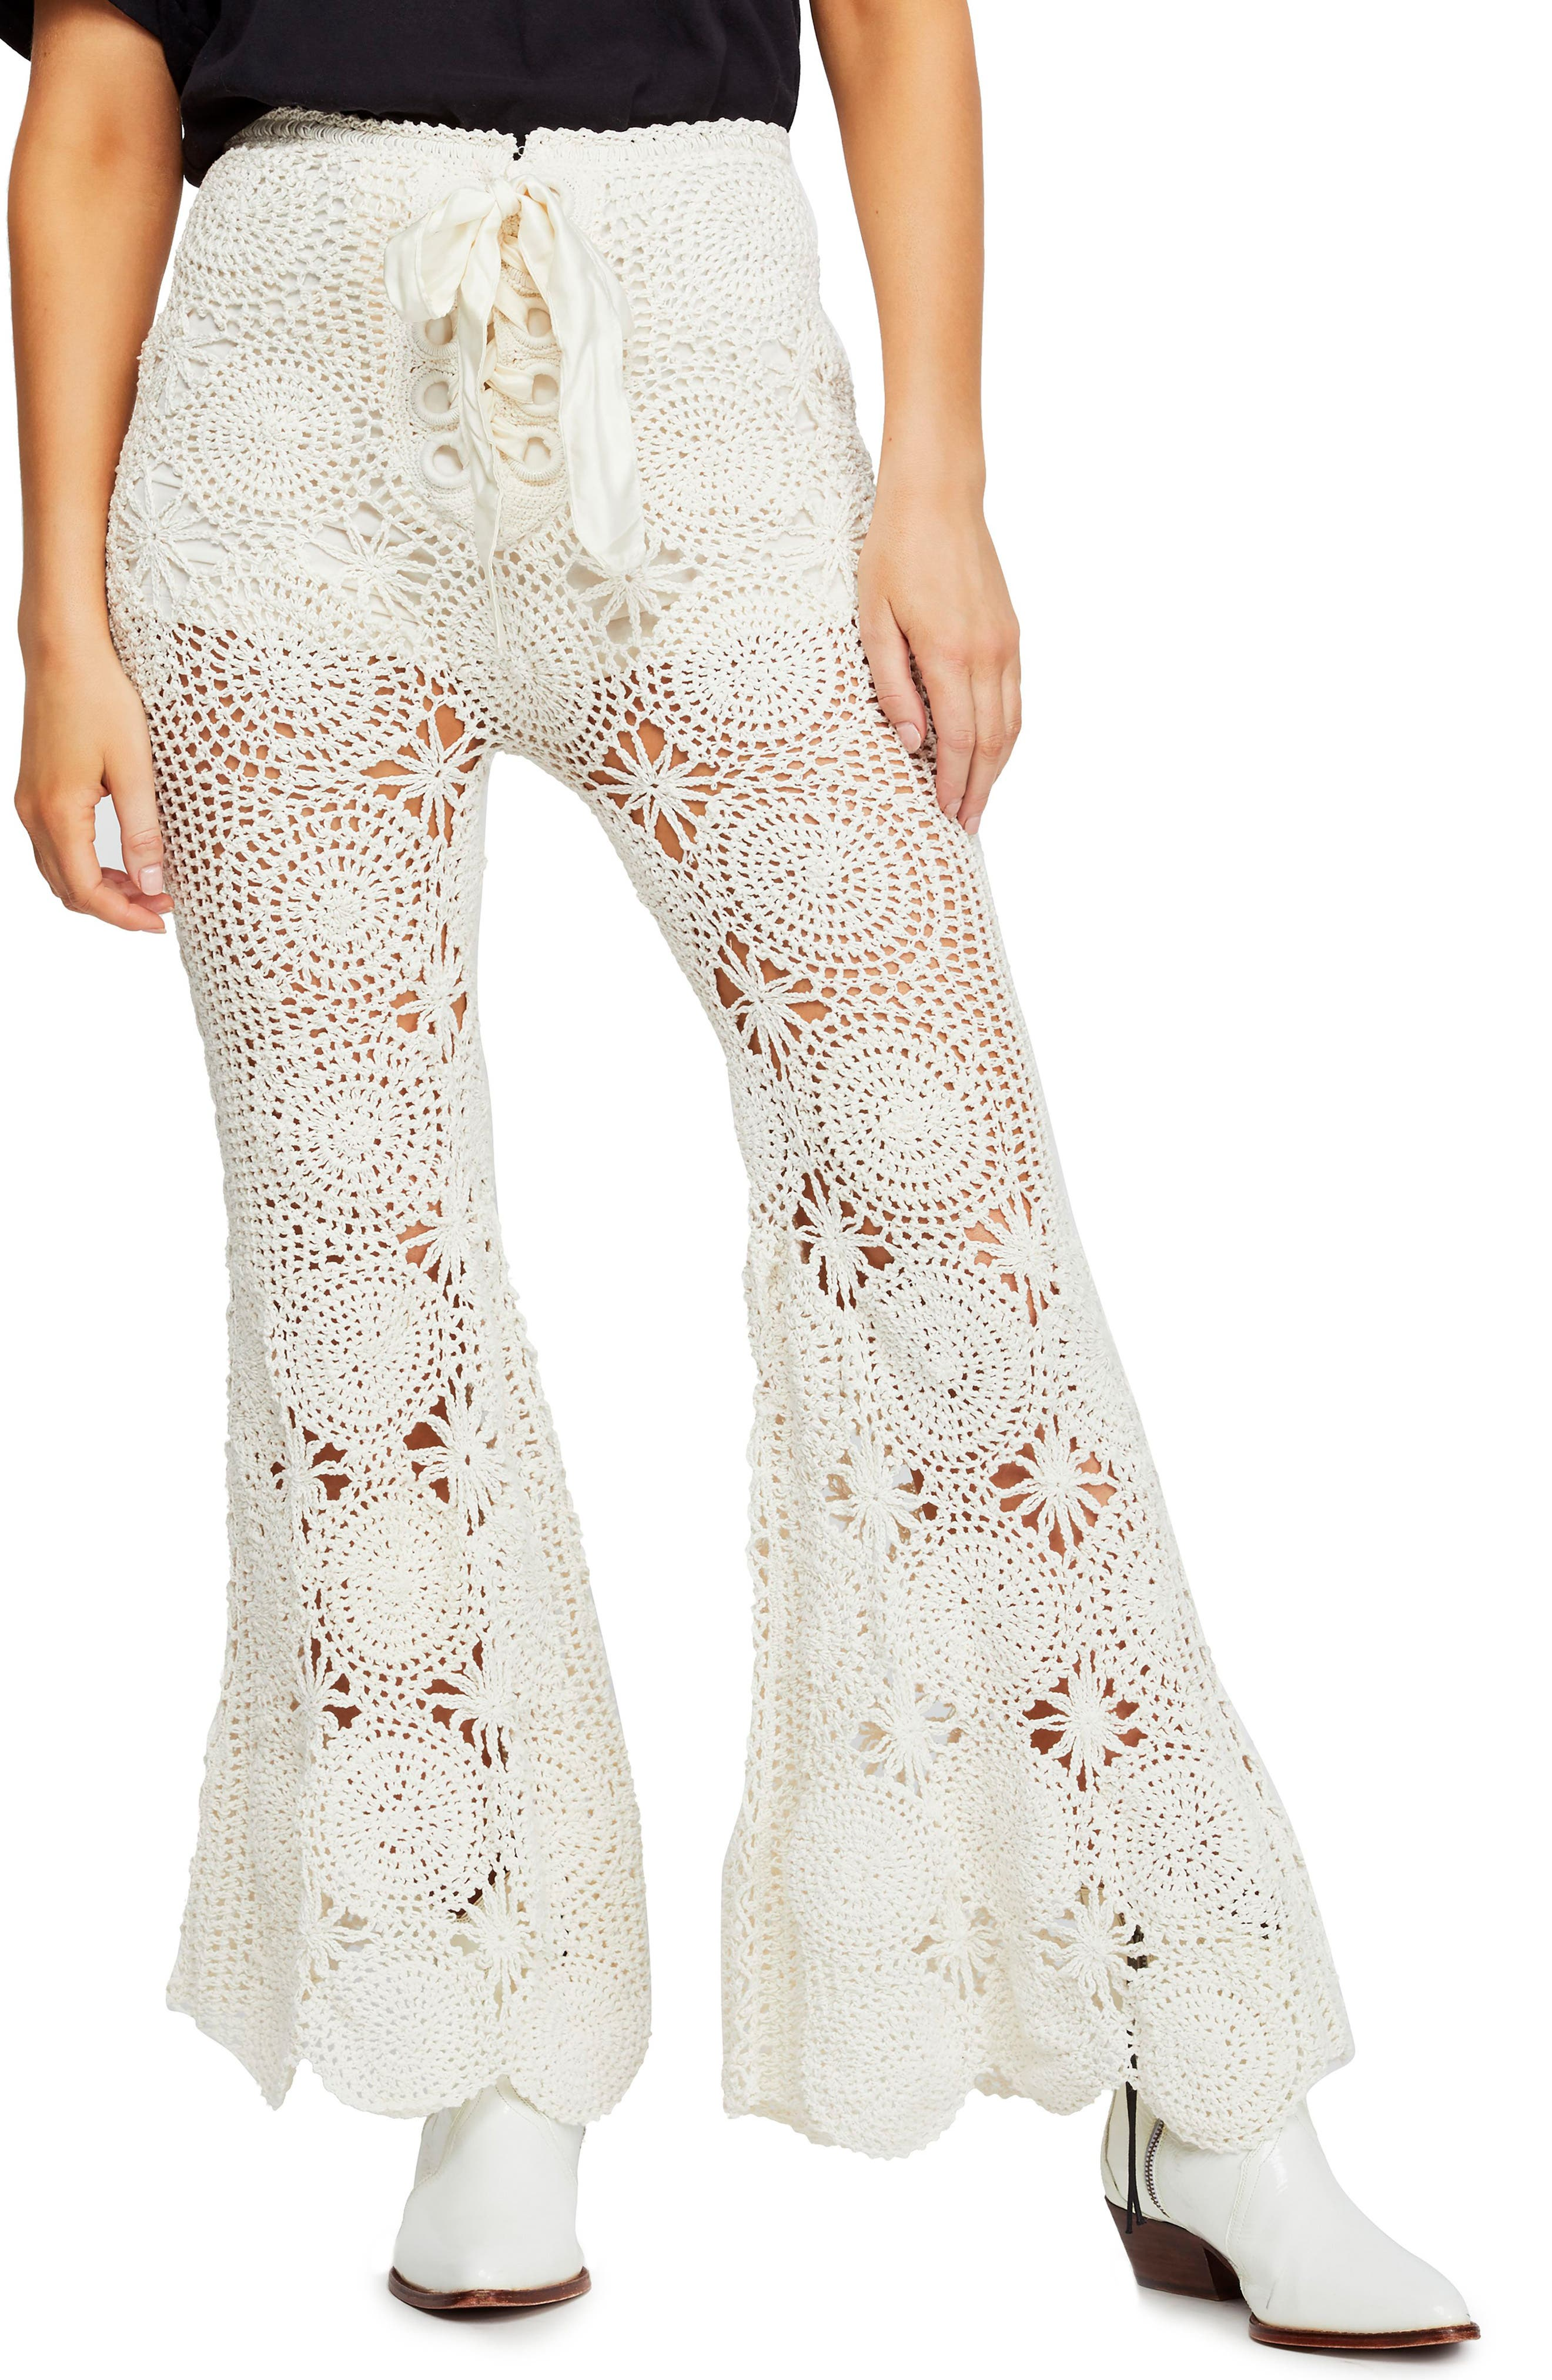 60s – 70s Pants, Jeans, Hippie, Bell Bottoms, Jumpsuits Womens Free People Crochet Lace Flare Pants Size X-Small - Ivory $248.00 AT vintagedancer.com